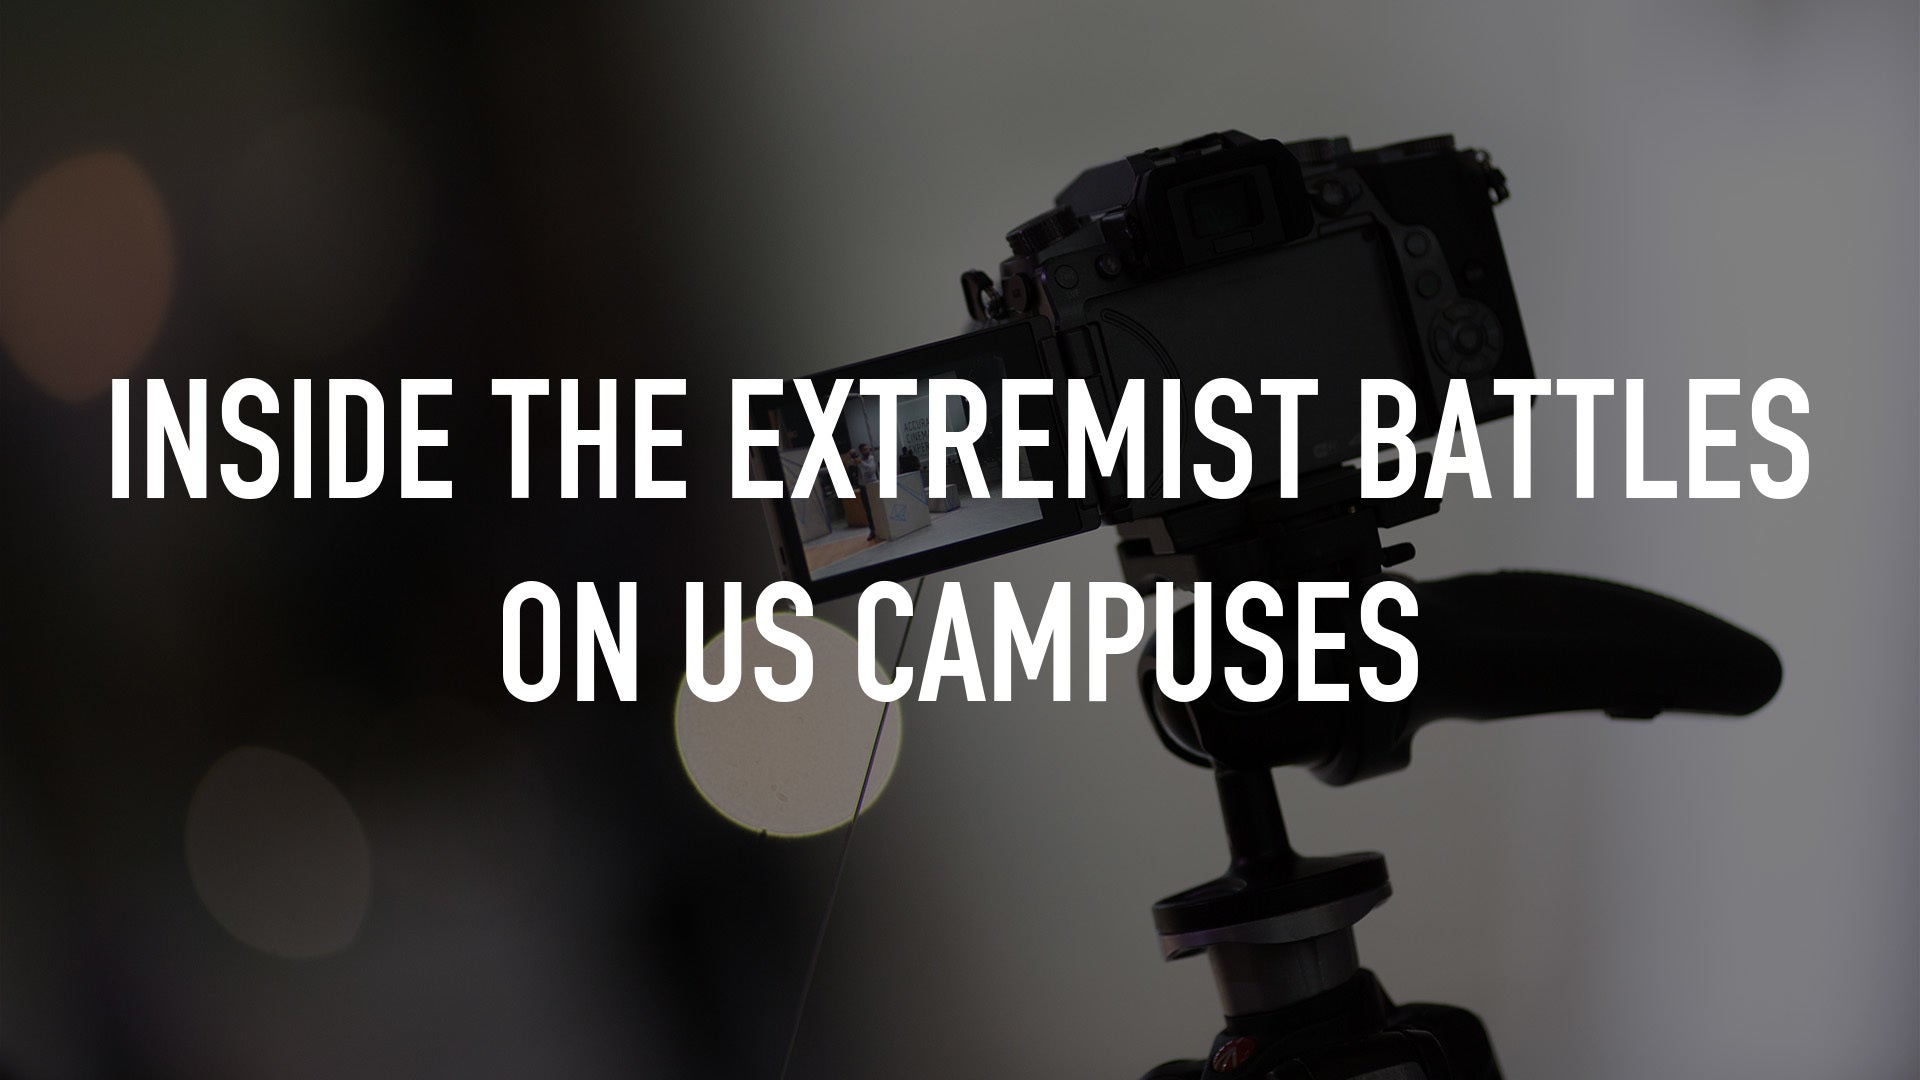 Inside the Extremist Battles on US Campuses